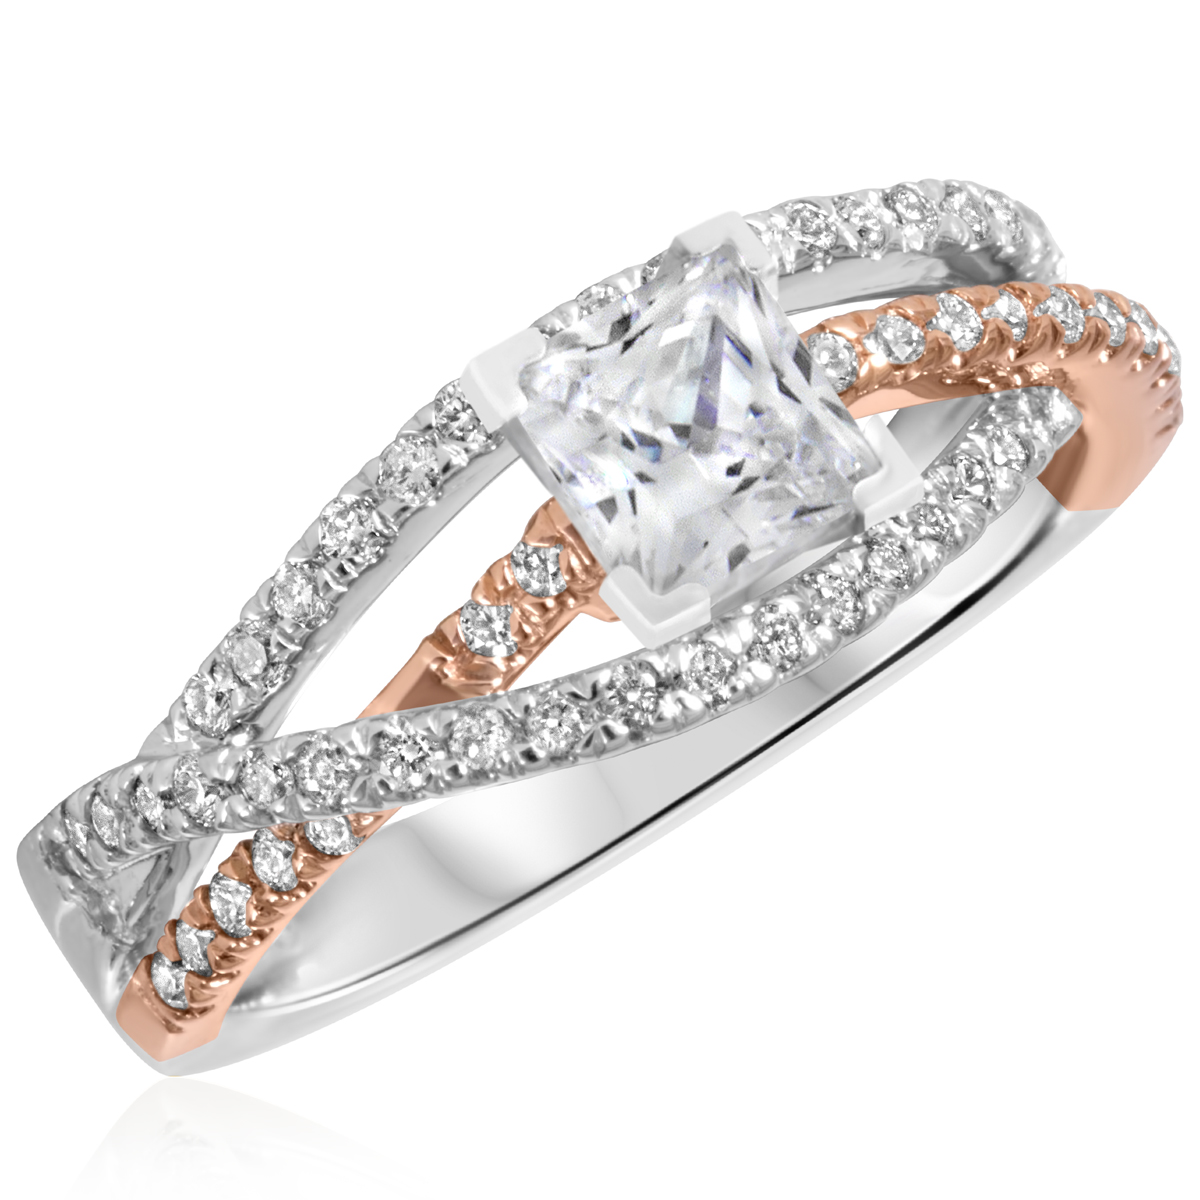 Engagement Rings On Sale Newcastle: Thanksgiving Ringoff Sale! Matching Trio Sets, Bridal